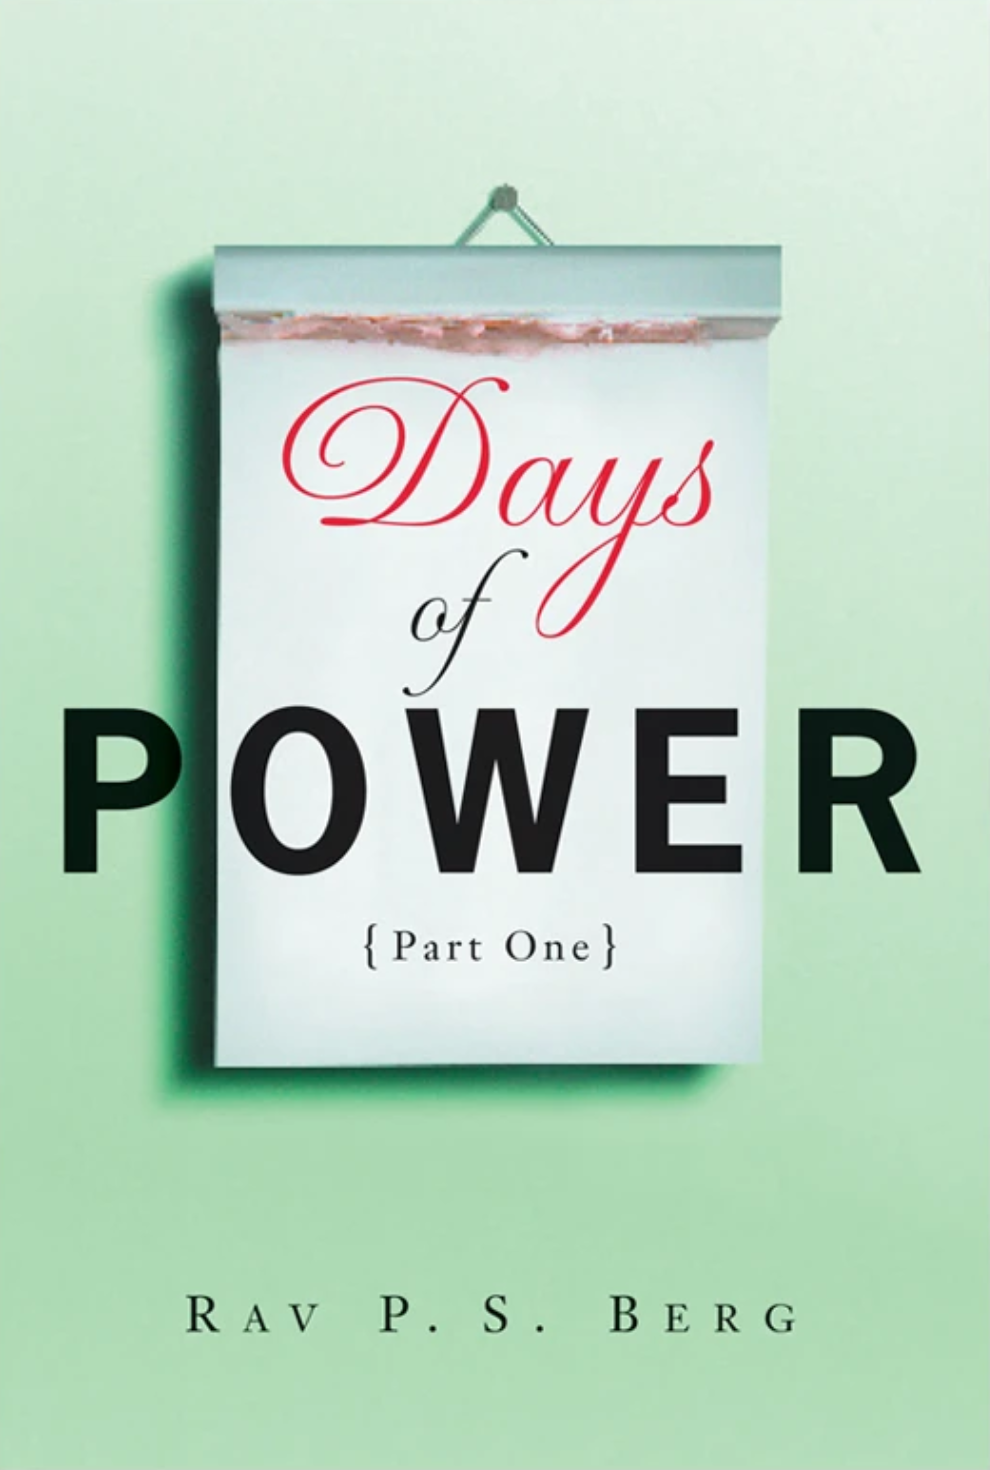 Days of Power: part 1